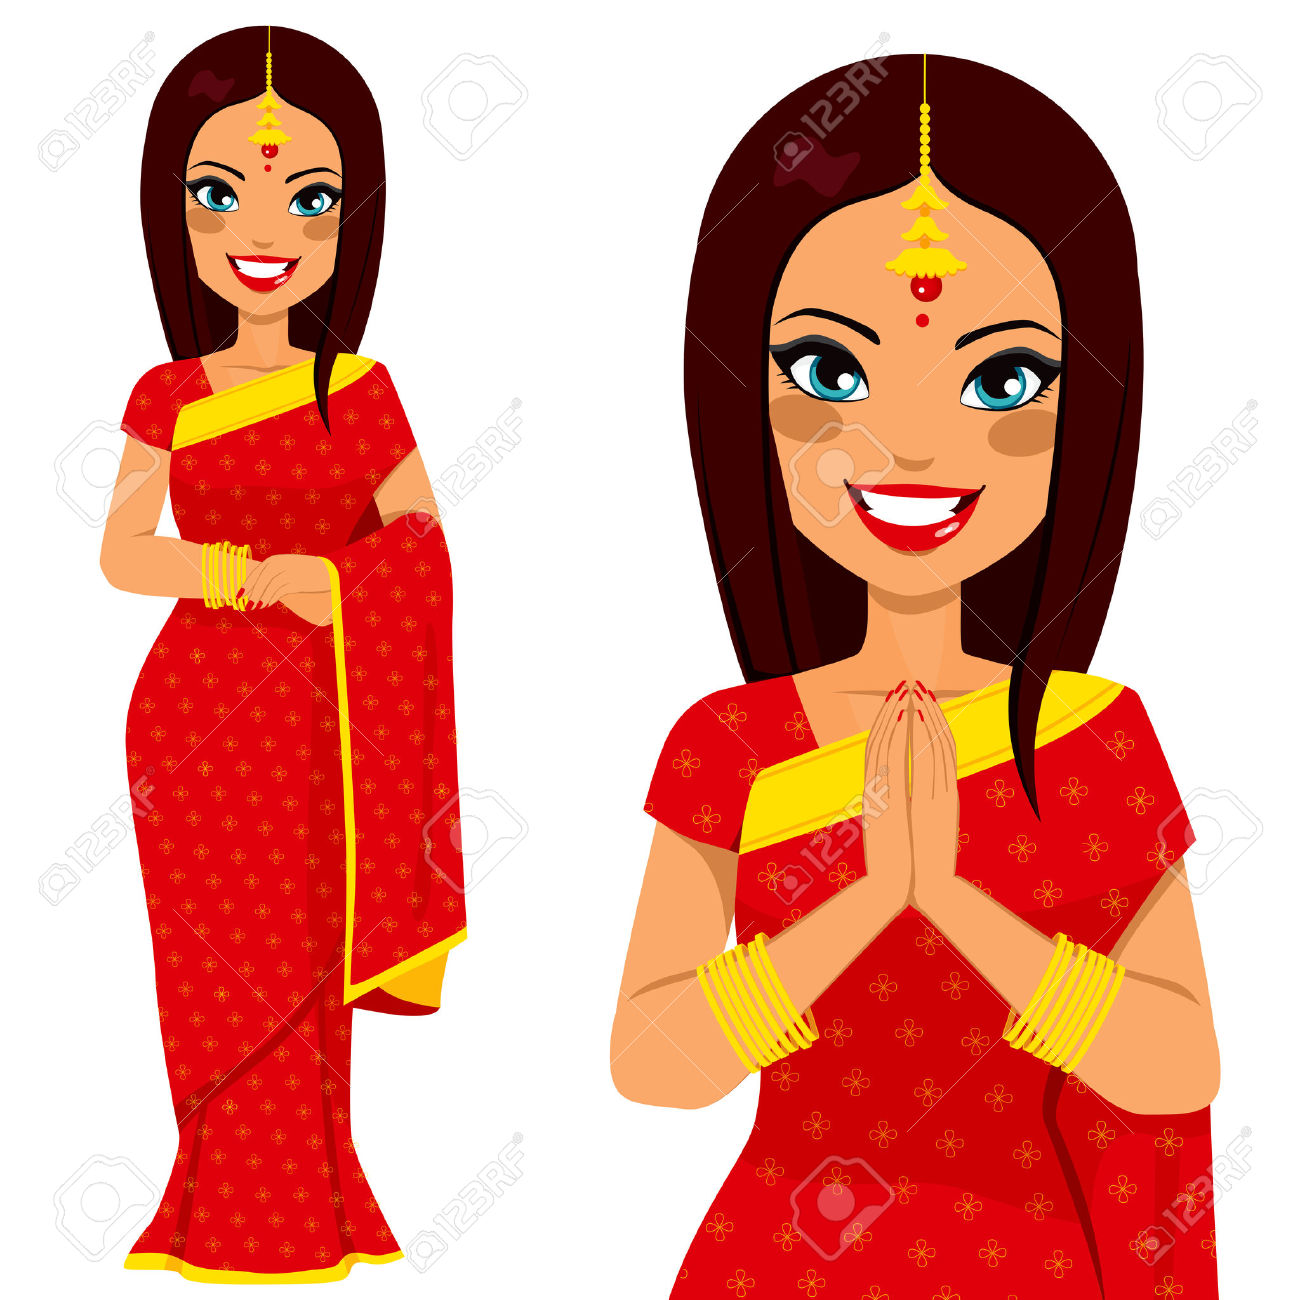 Bengali traditional dress clipart jpg transparent library Bengali girls clipart - ClipartFox jpg transparent library